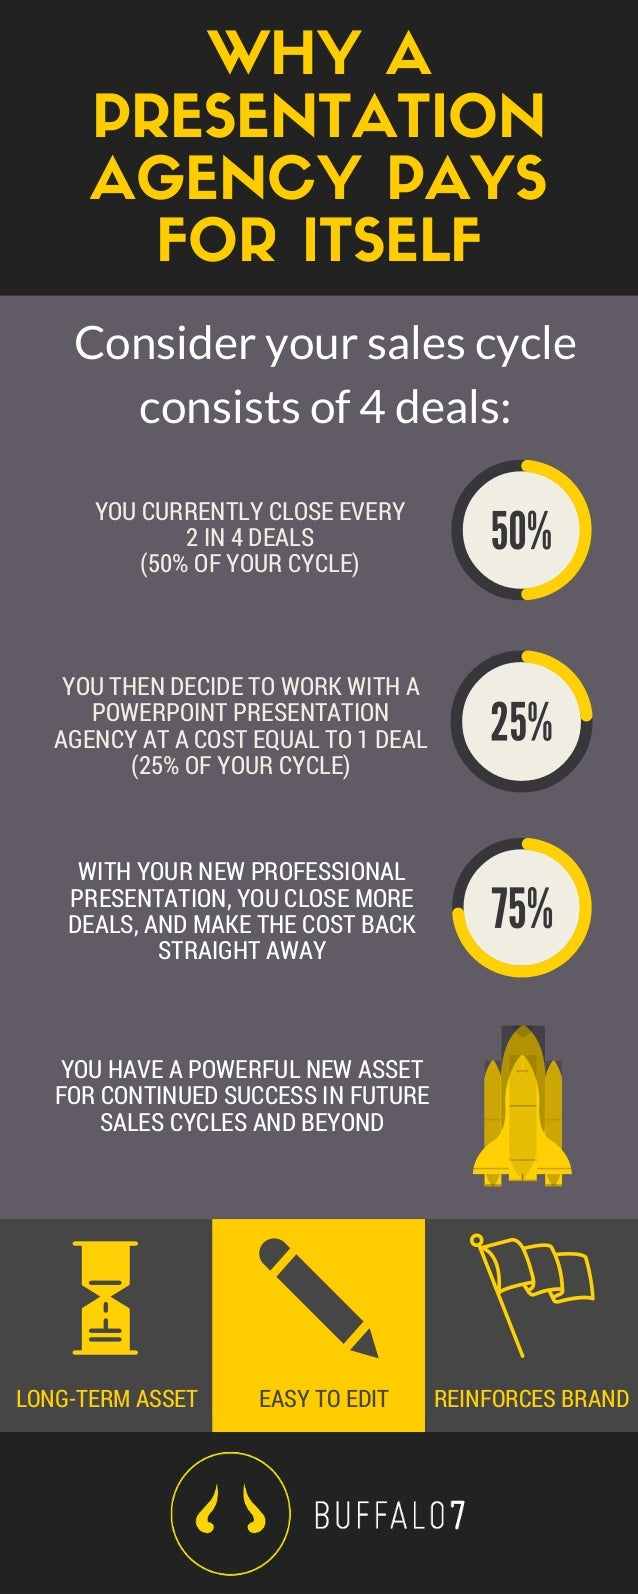 WHY A PRESENTATION AGENCY PAYS FOR ITSELF YOU CURRENTLY CLOSE EVERY 2 IN 4 DEALS (50% OF YOUR CYCLE) YOU THEN DECIDE TO WO...